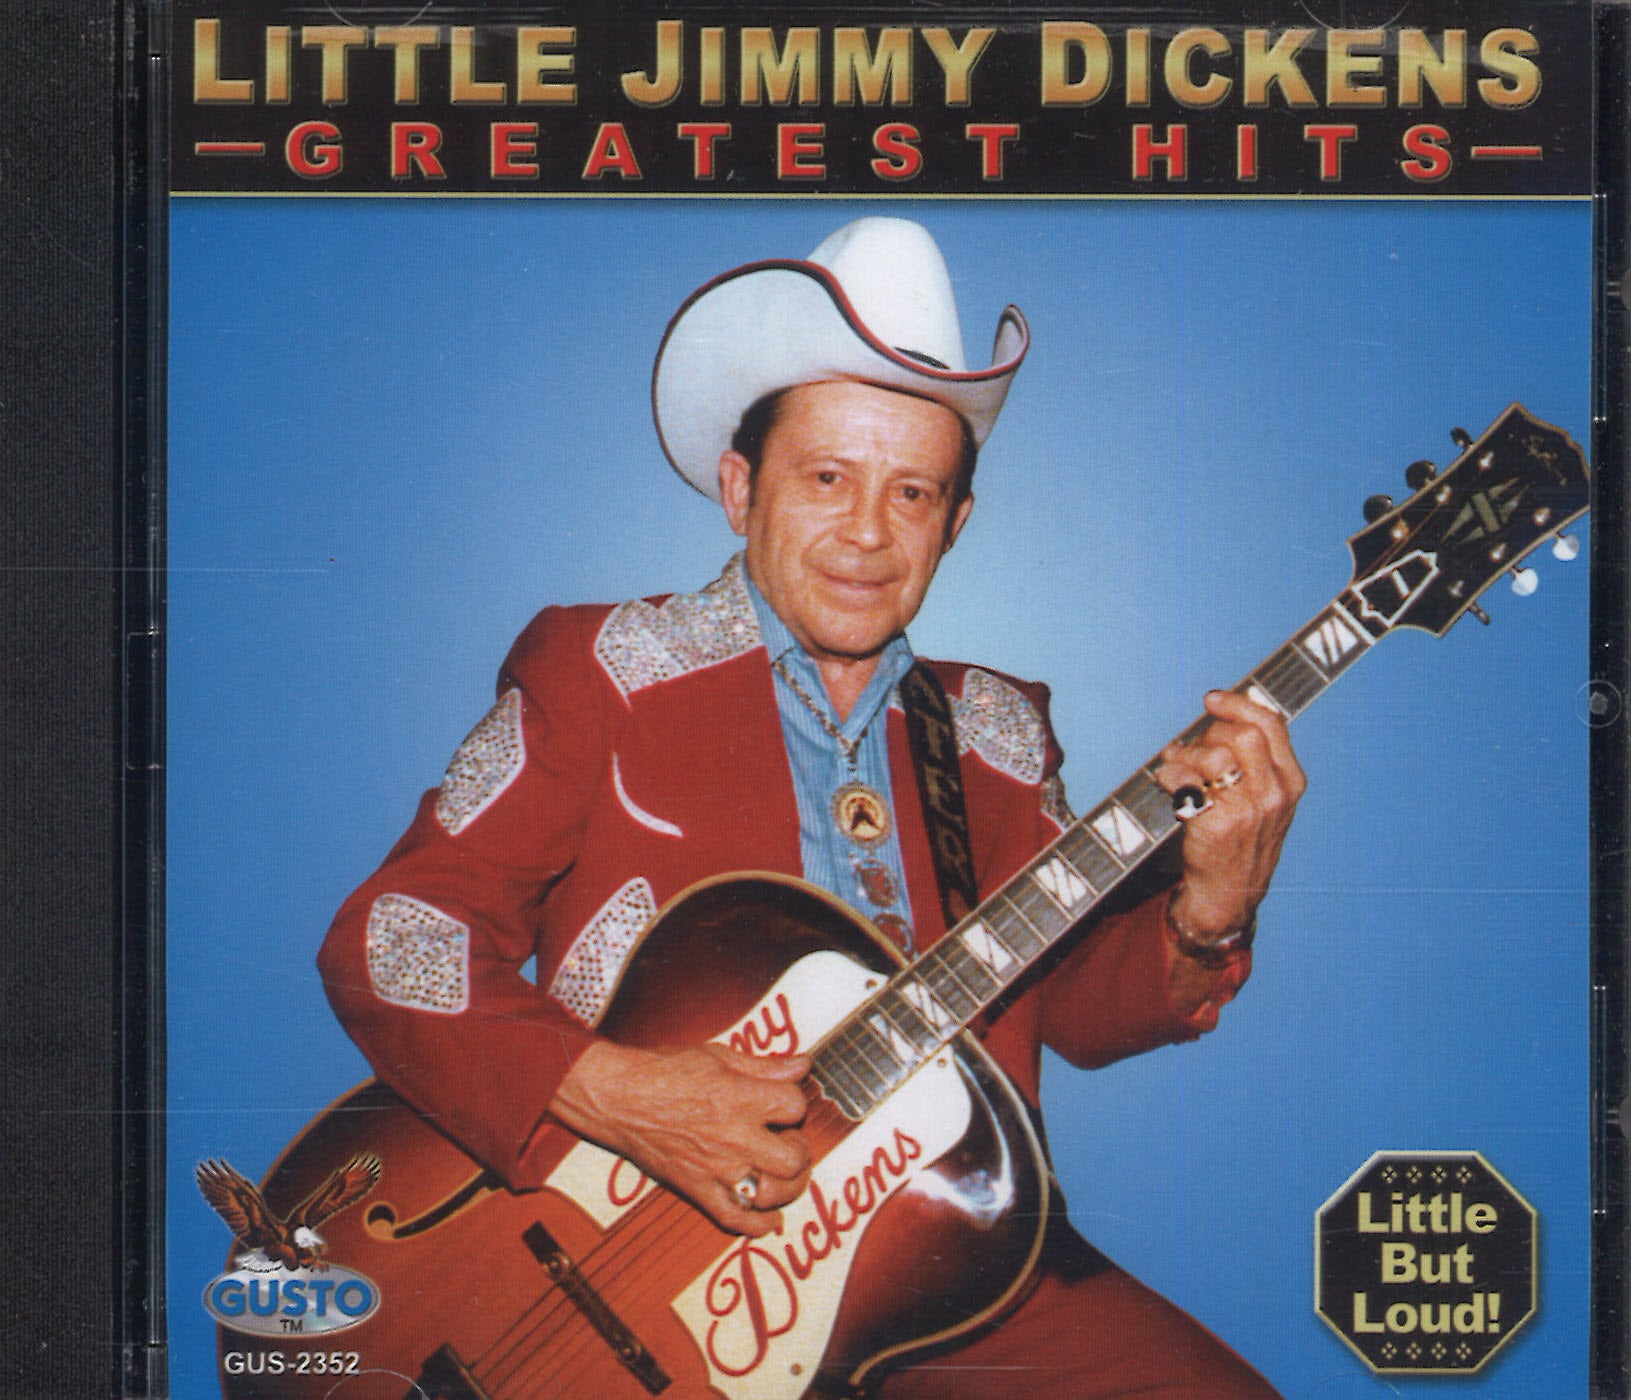 Little Jimmy Dickens Greatest Hits